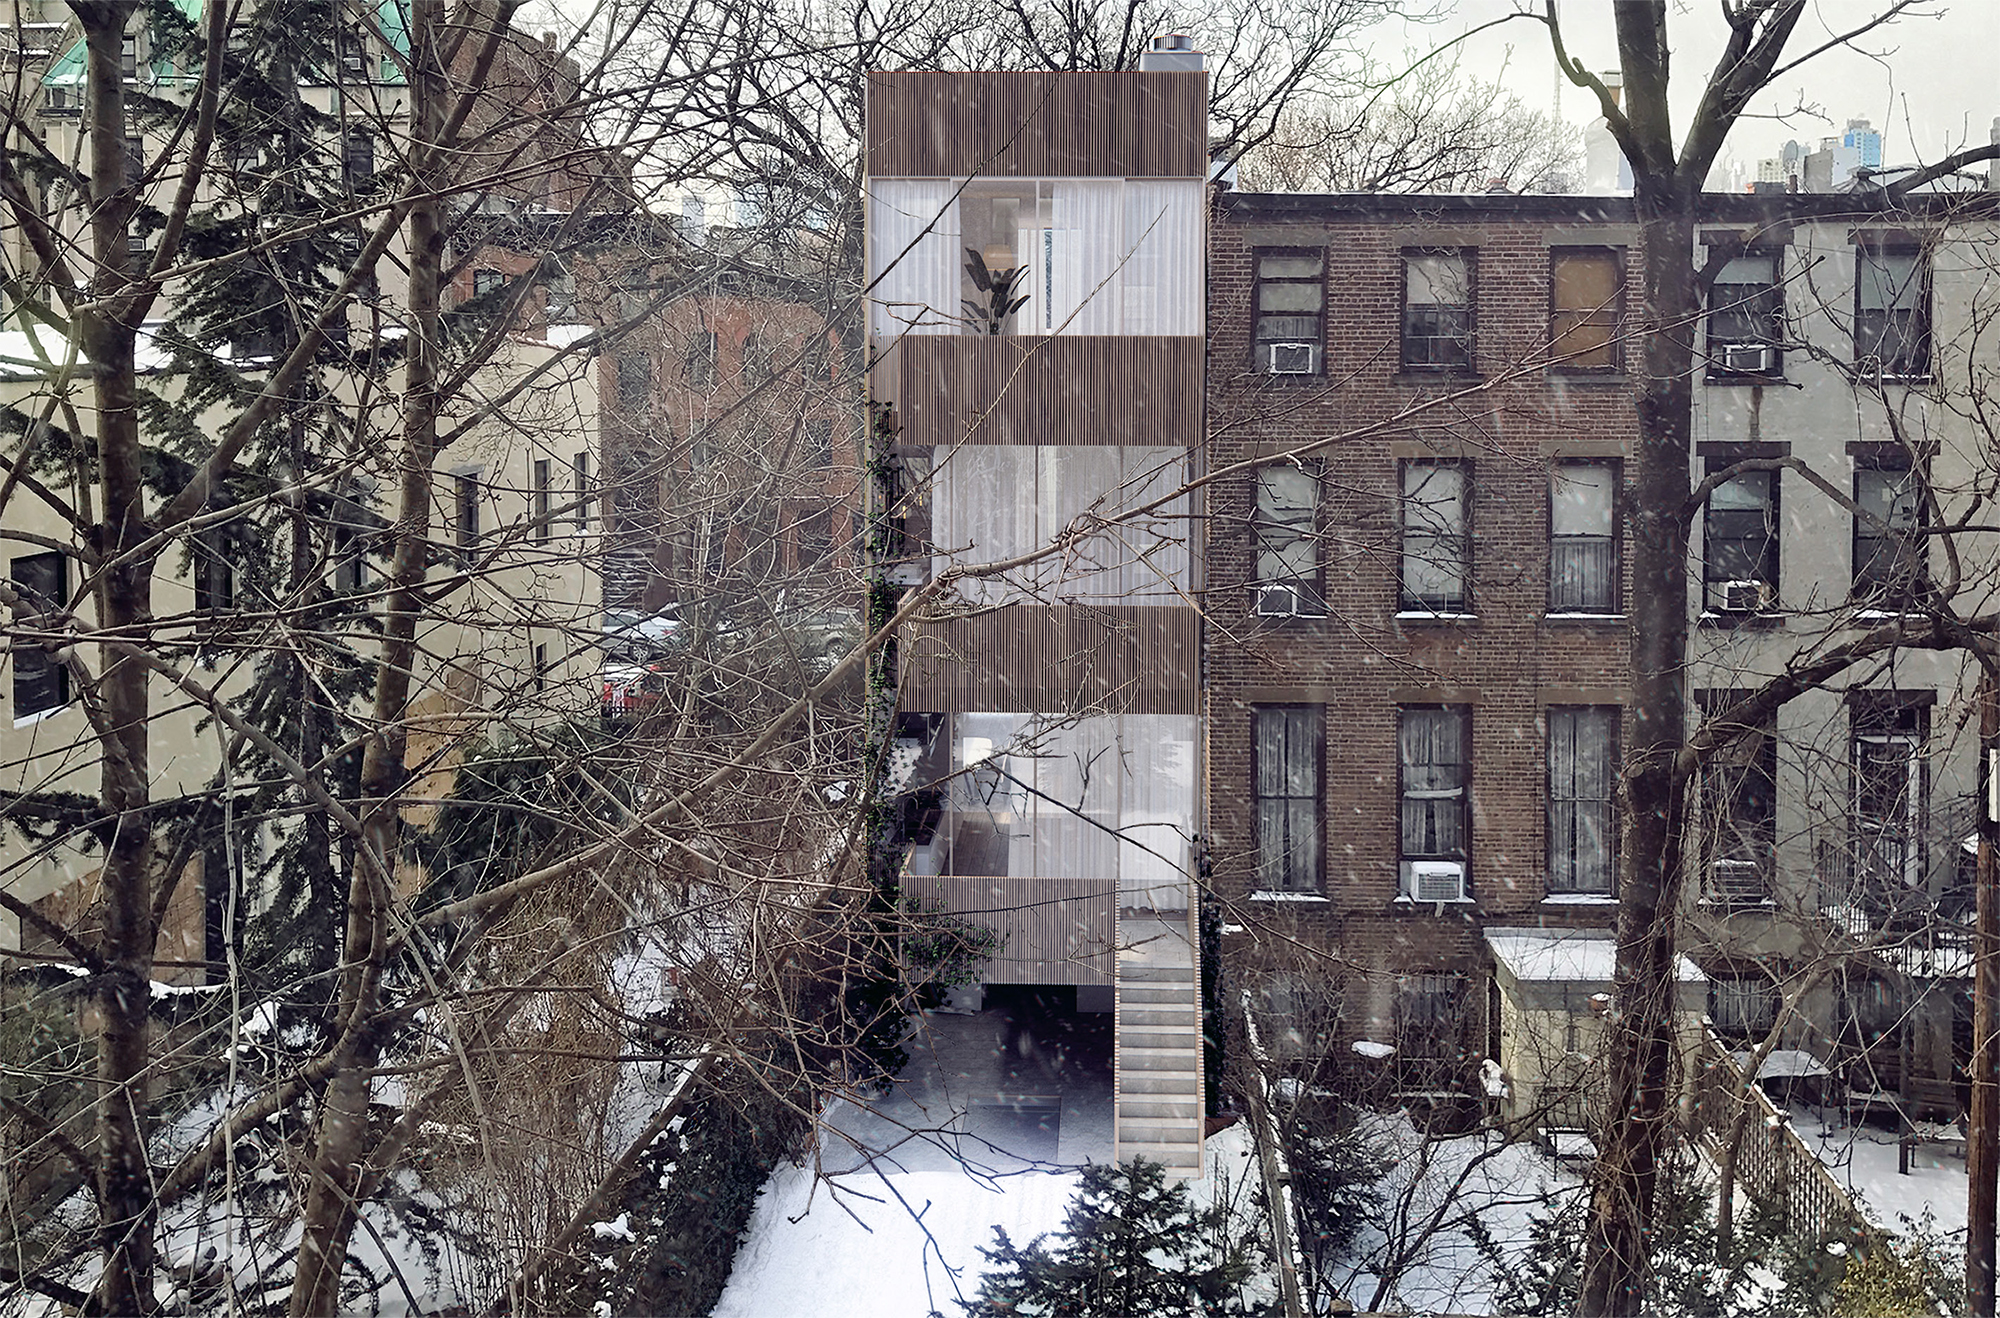 Proposal for rear of 311 Vanderbilt Avenue.